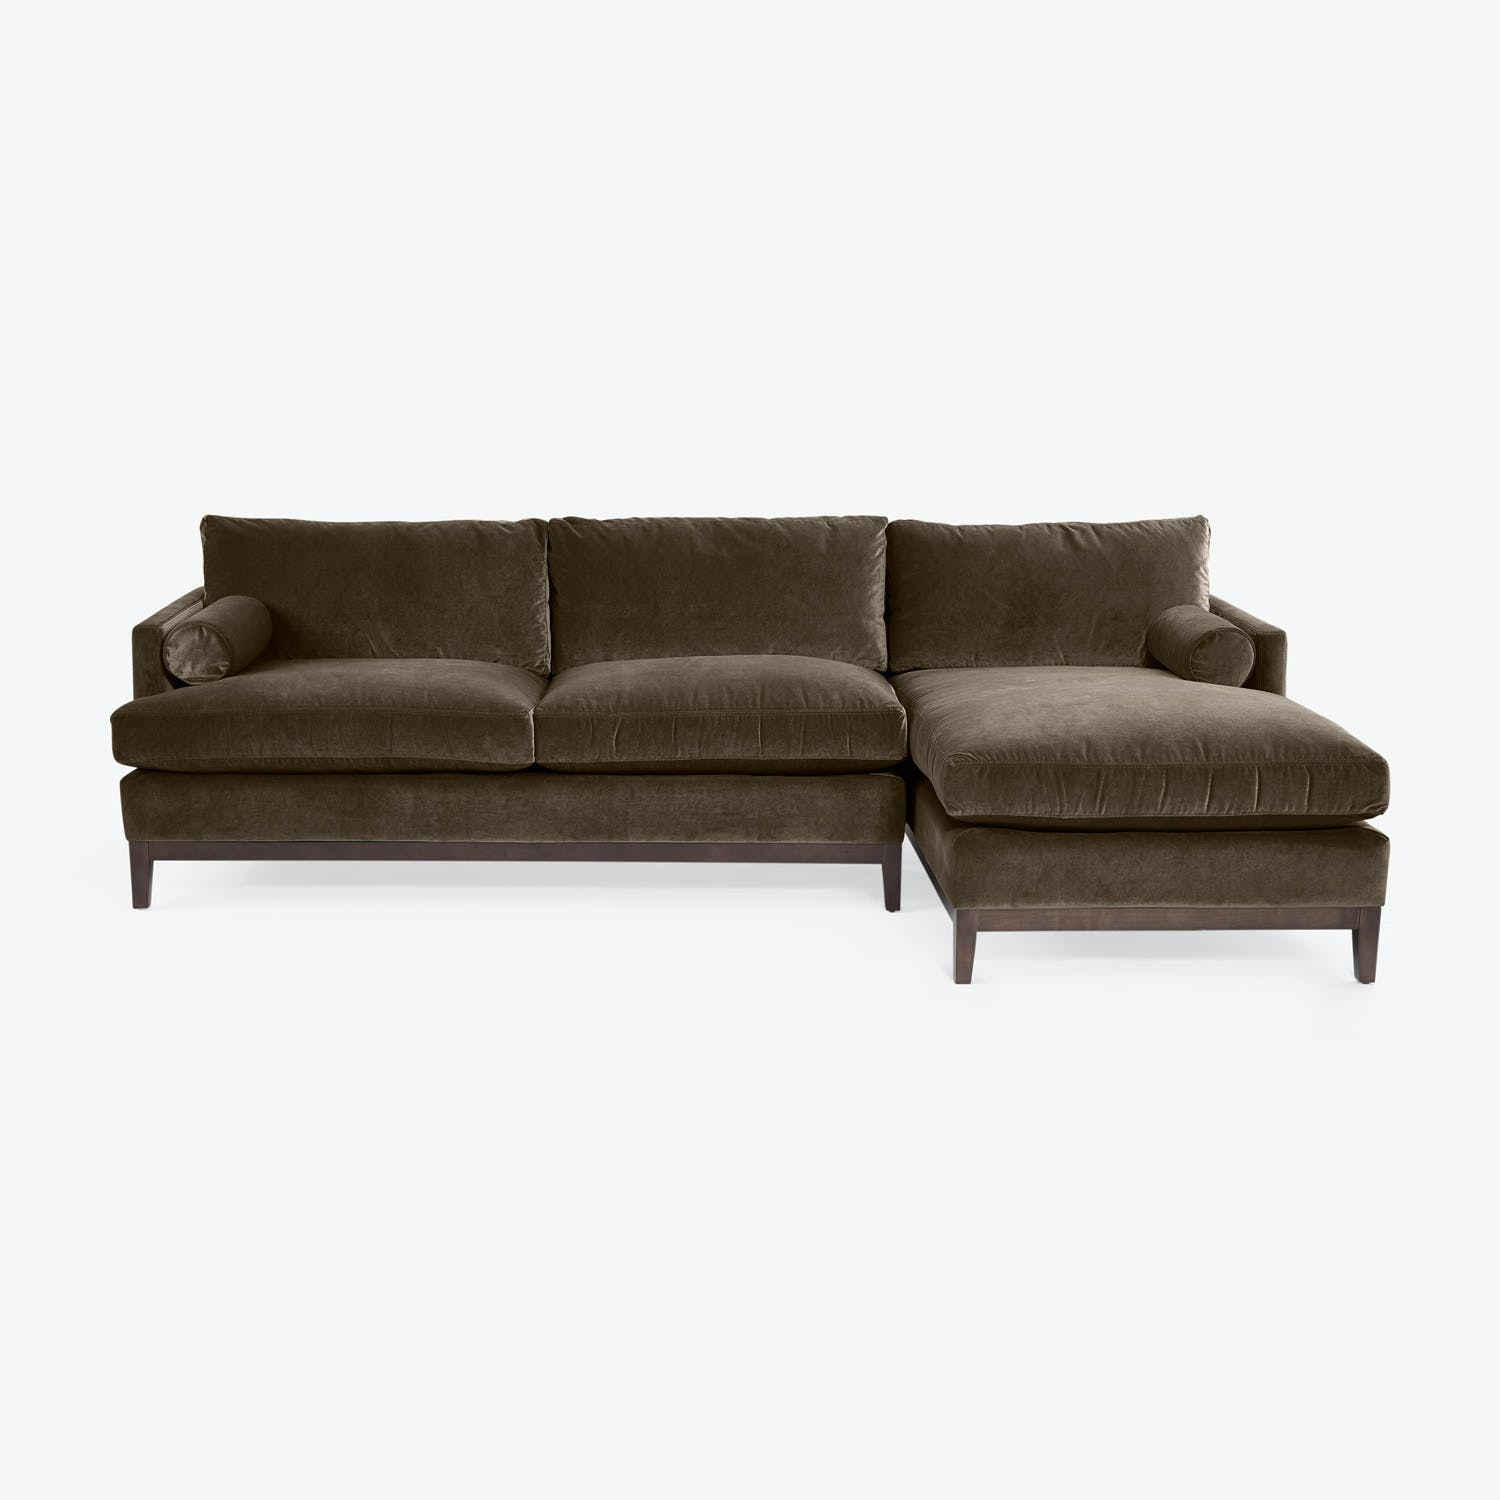 Product Image - Botanical Sectional Right Arm Facing Chaise